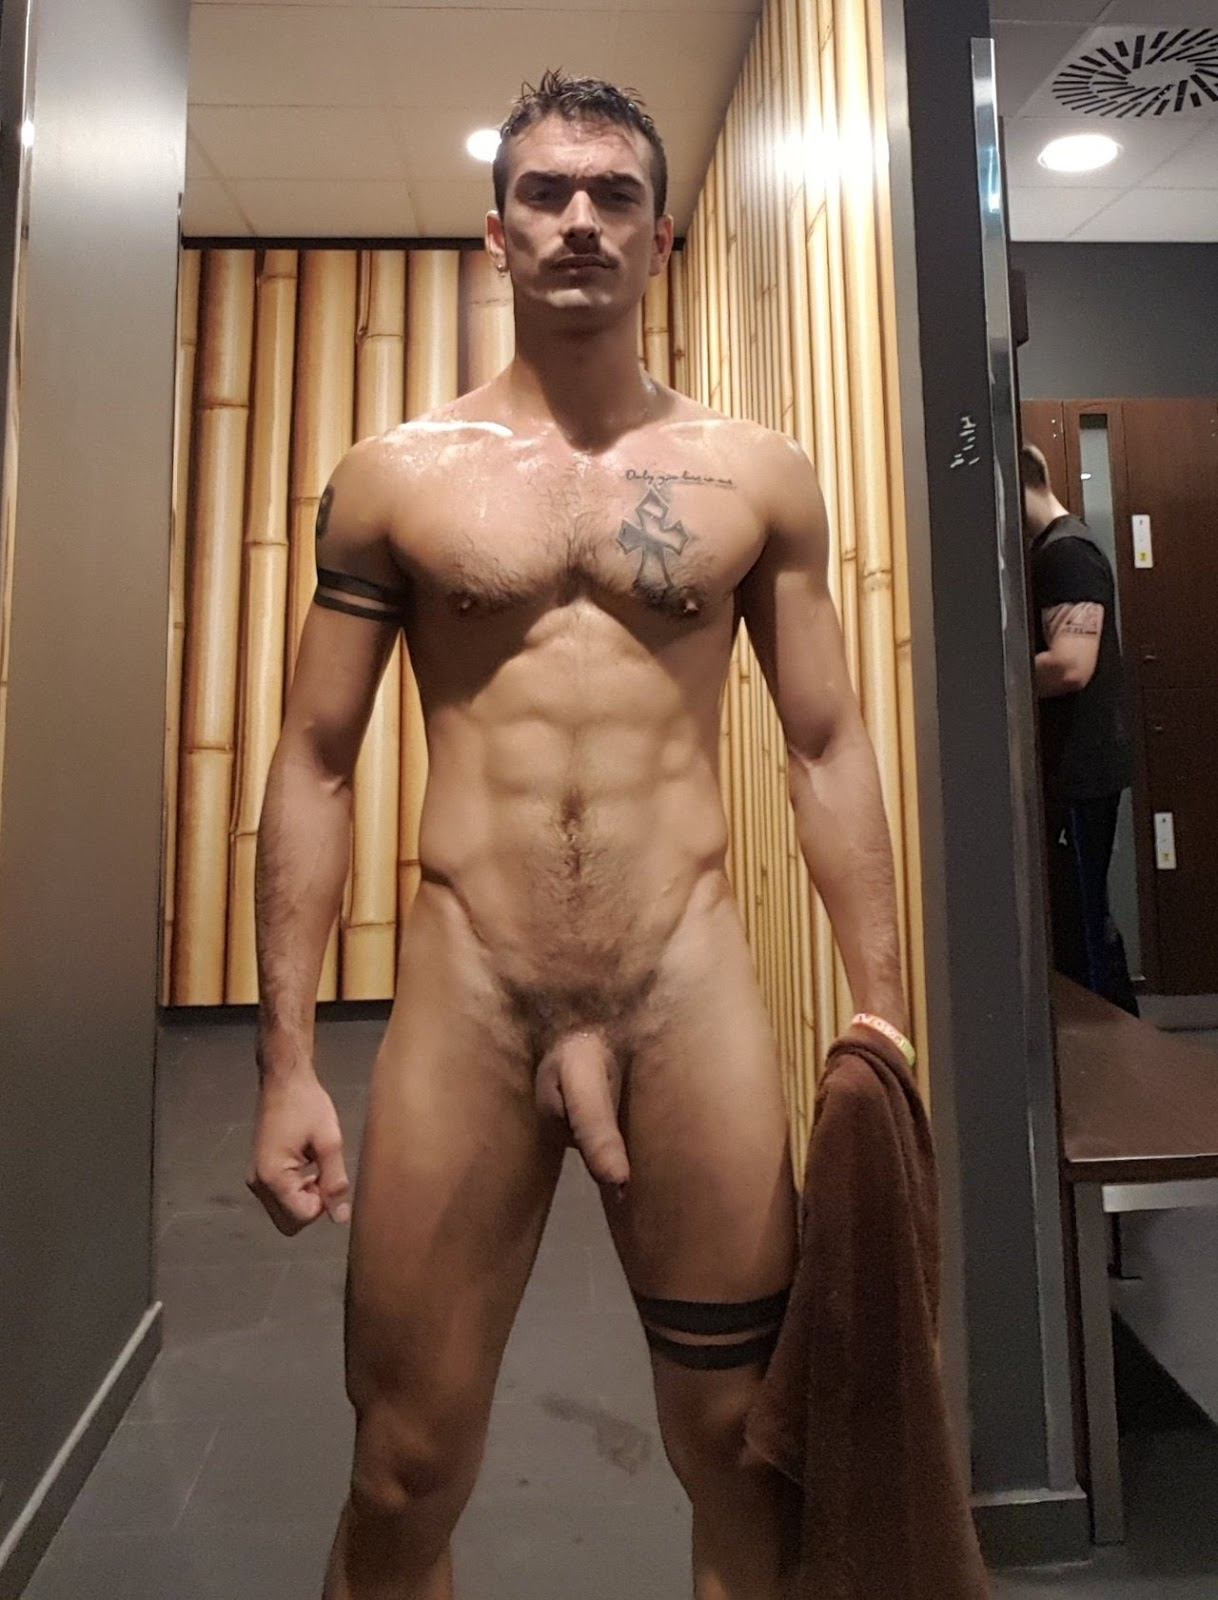 Naked Locker Room Photos